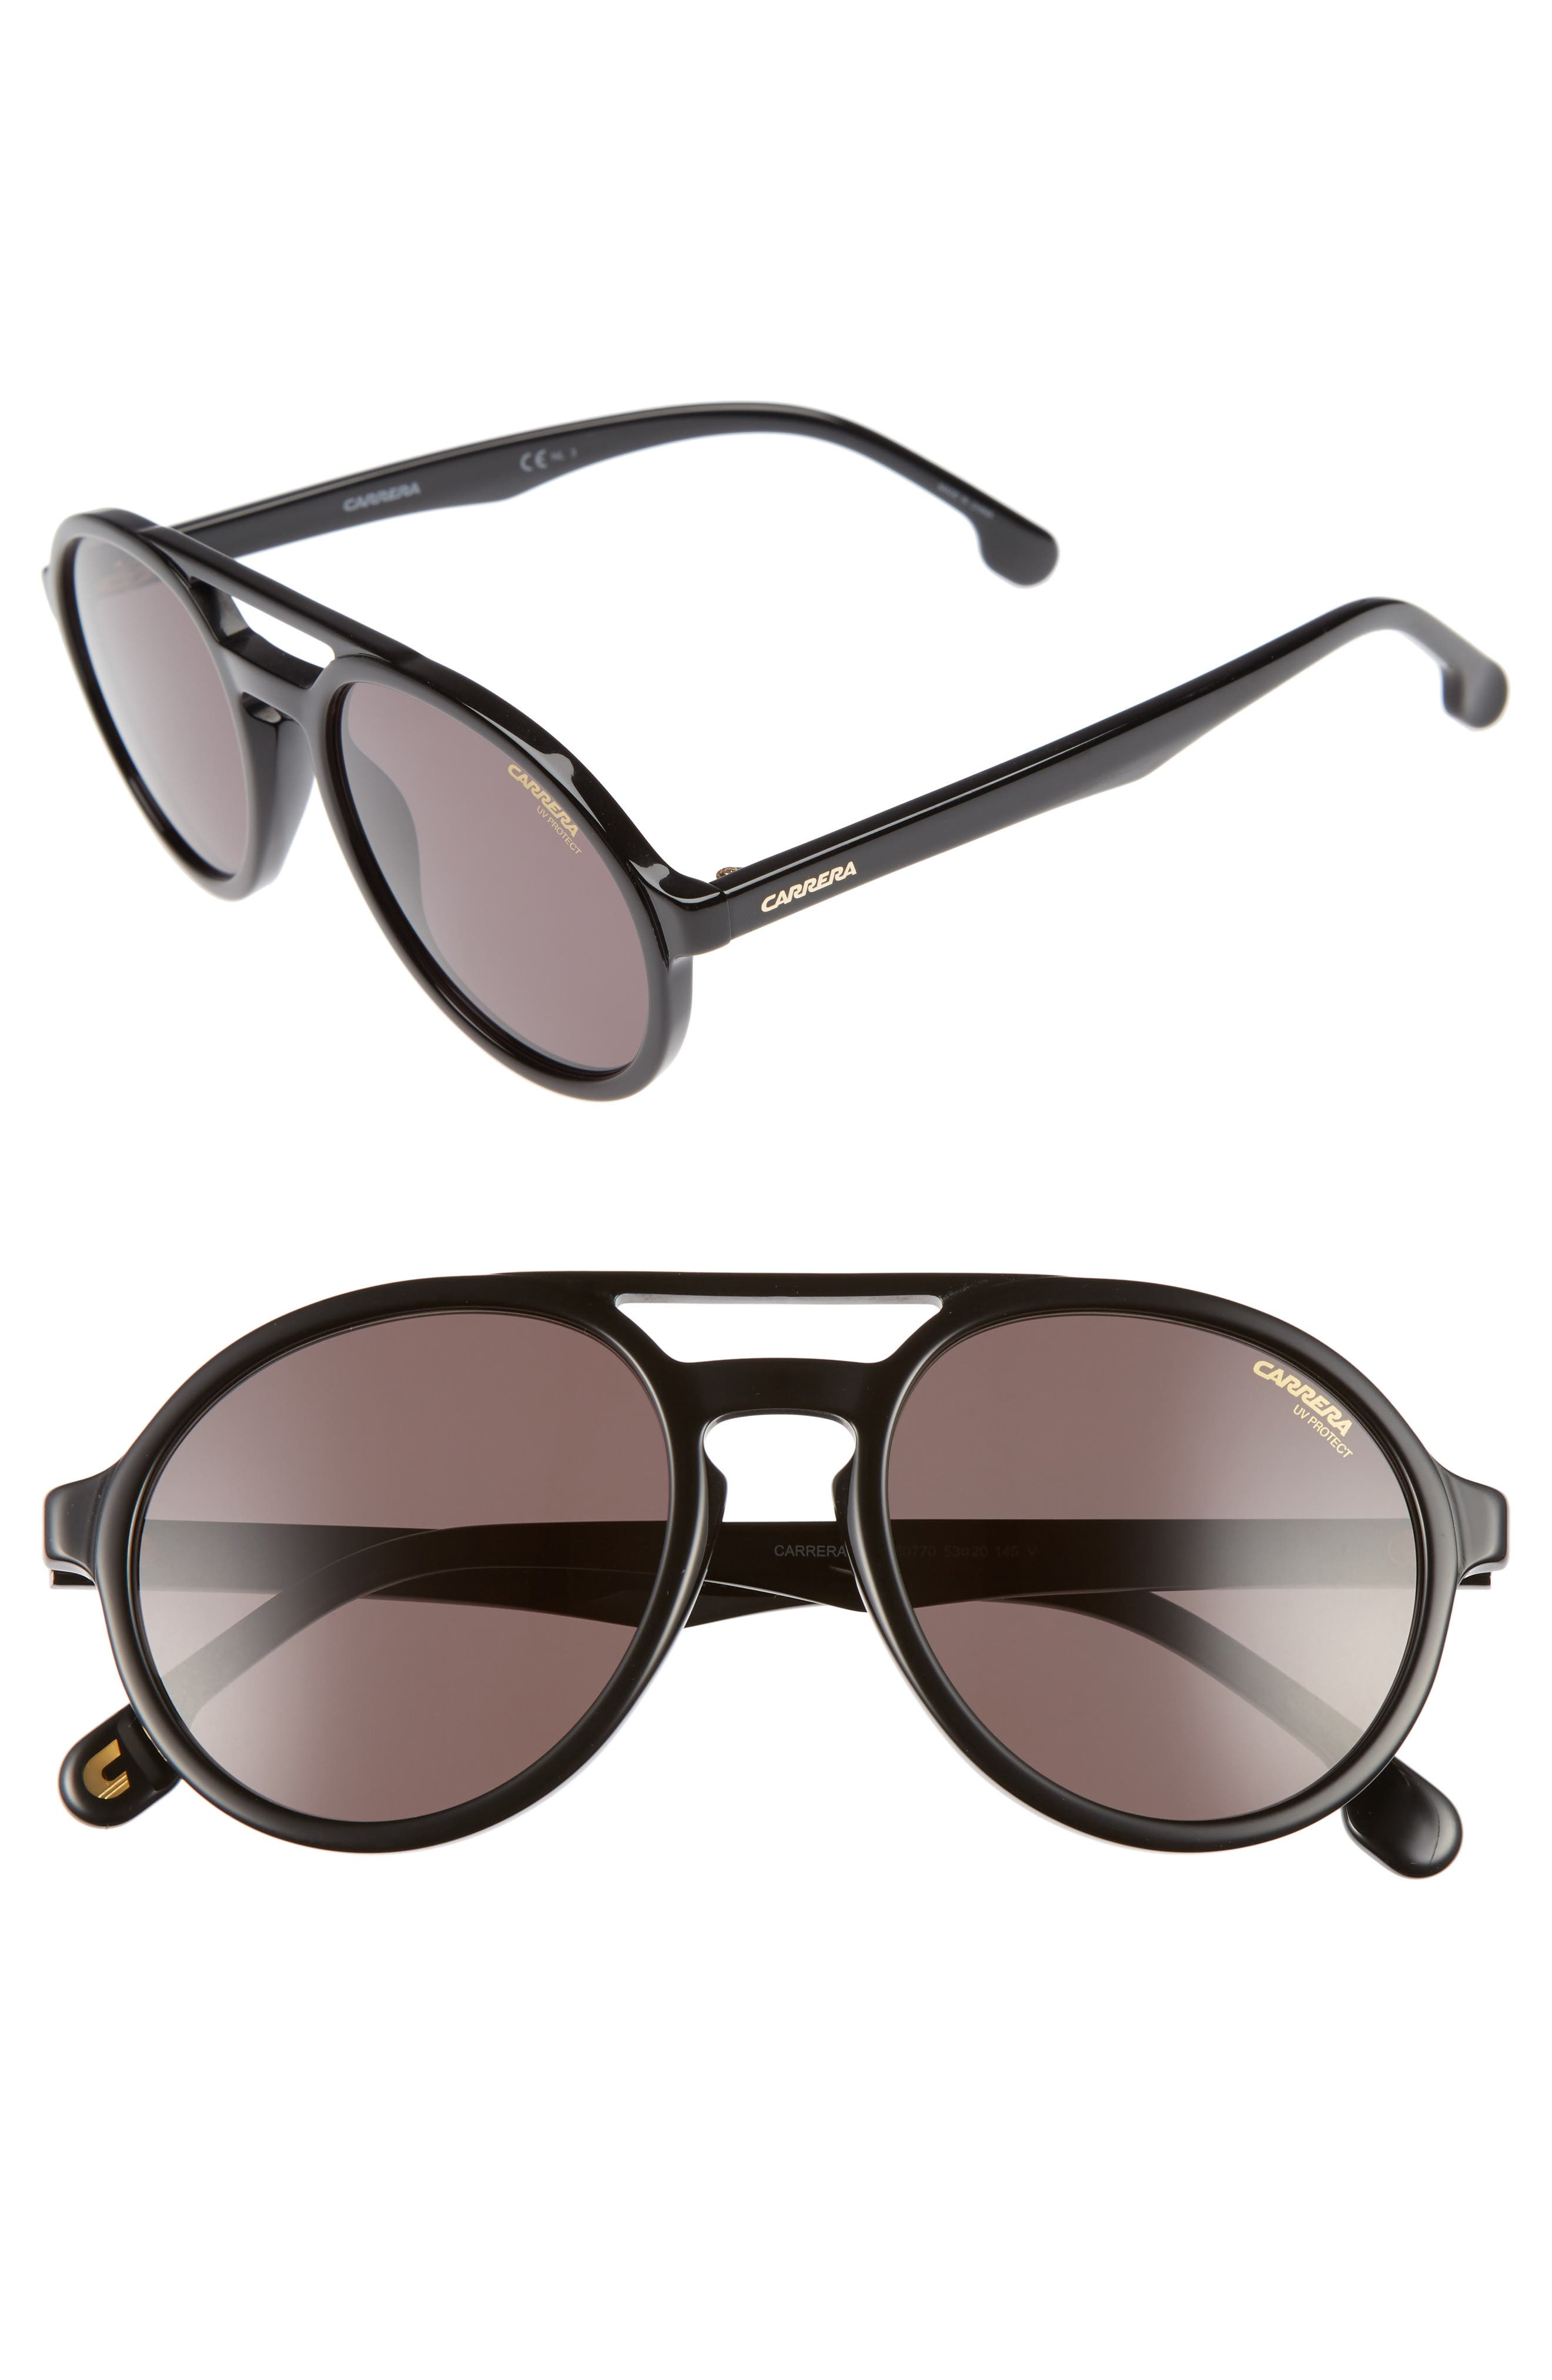 Carrera Pace 53mm Polarized Pilot Sunglasses,                             Main thumbnail 1, color,                             001